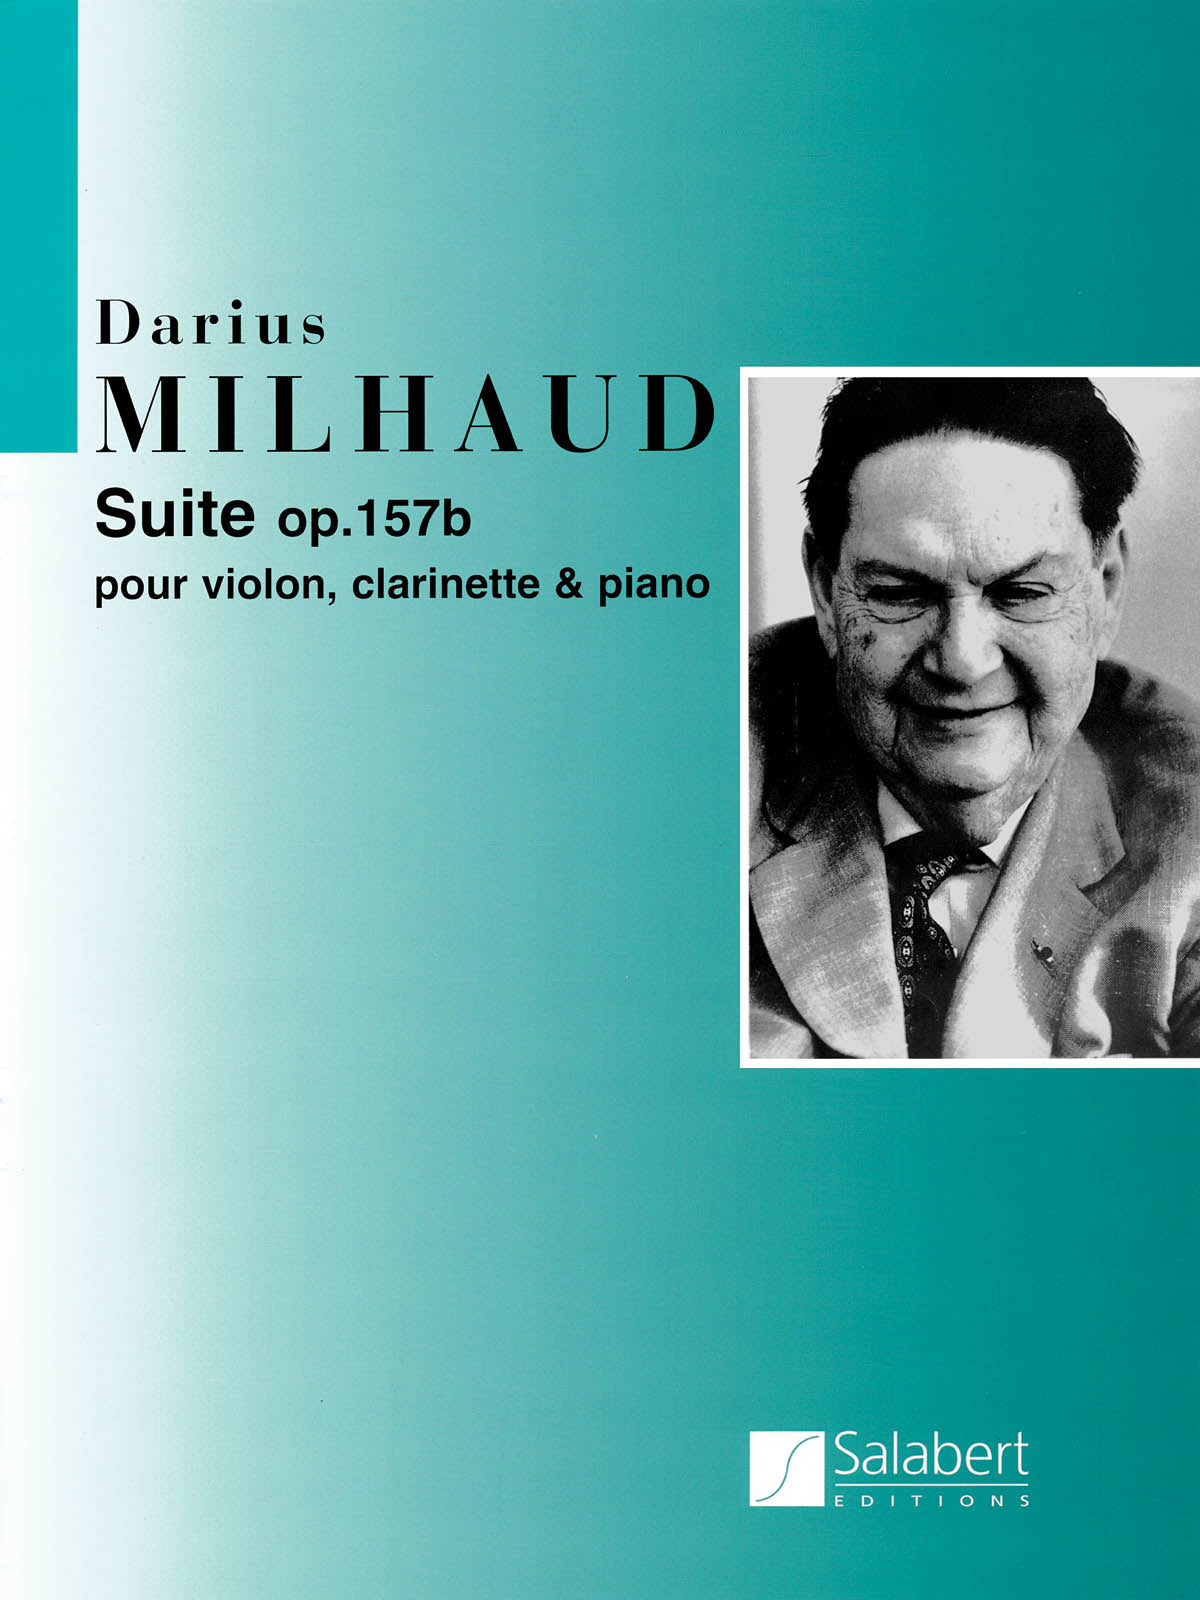 Milhaud: Suite for Violin, Clarinet and Piano, Op. 157b